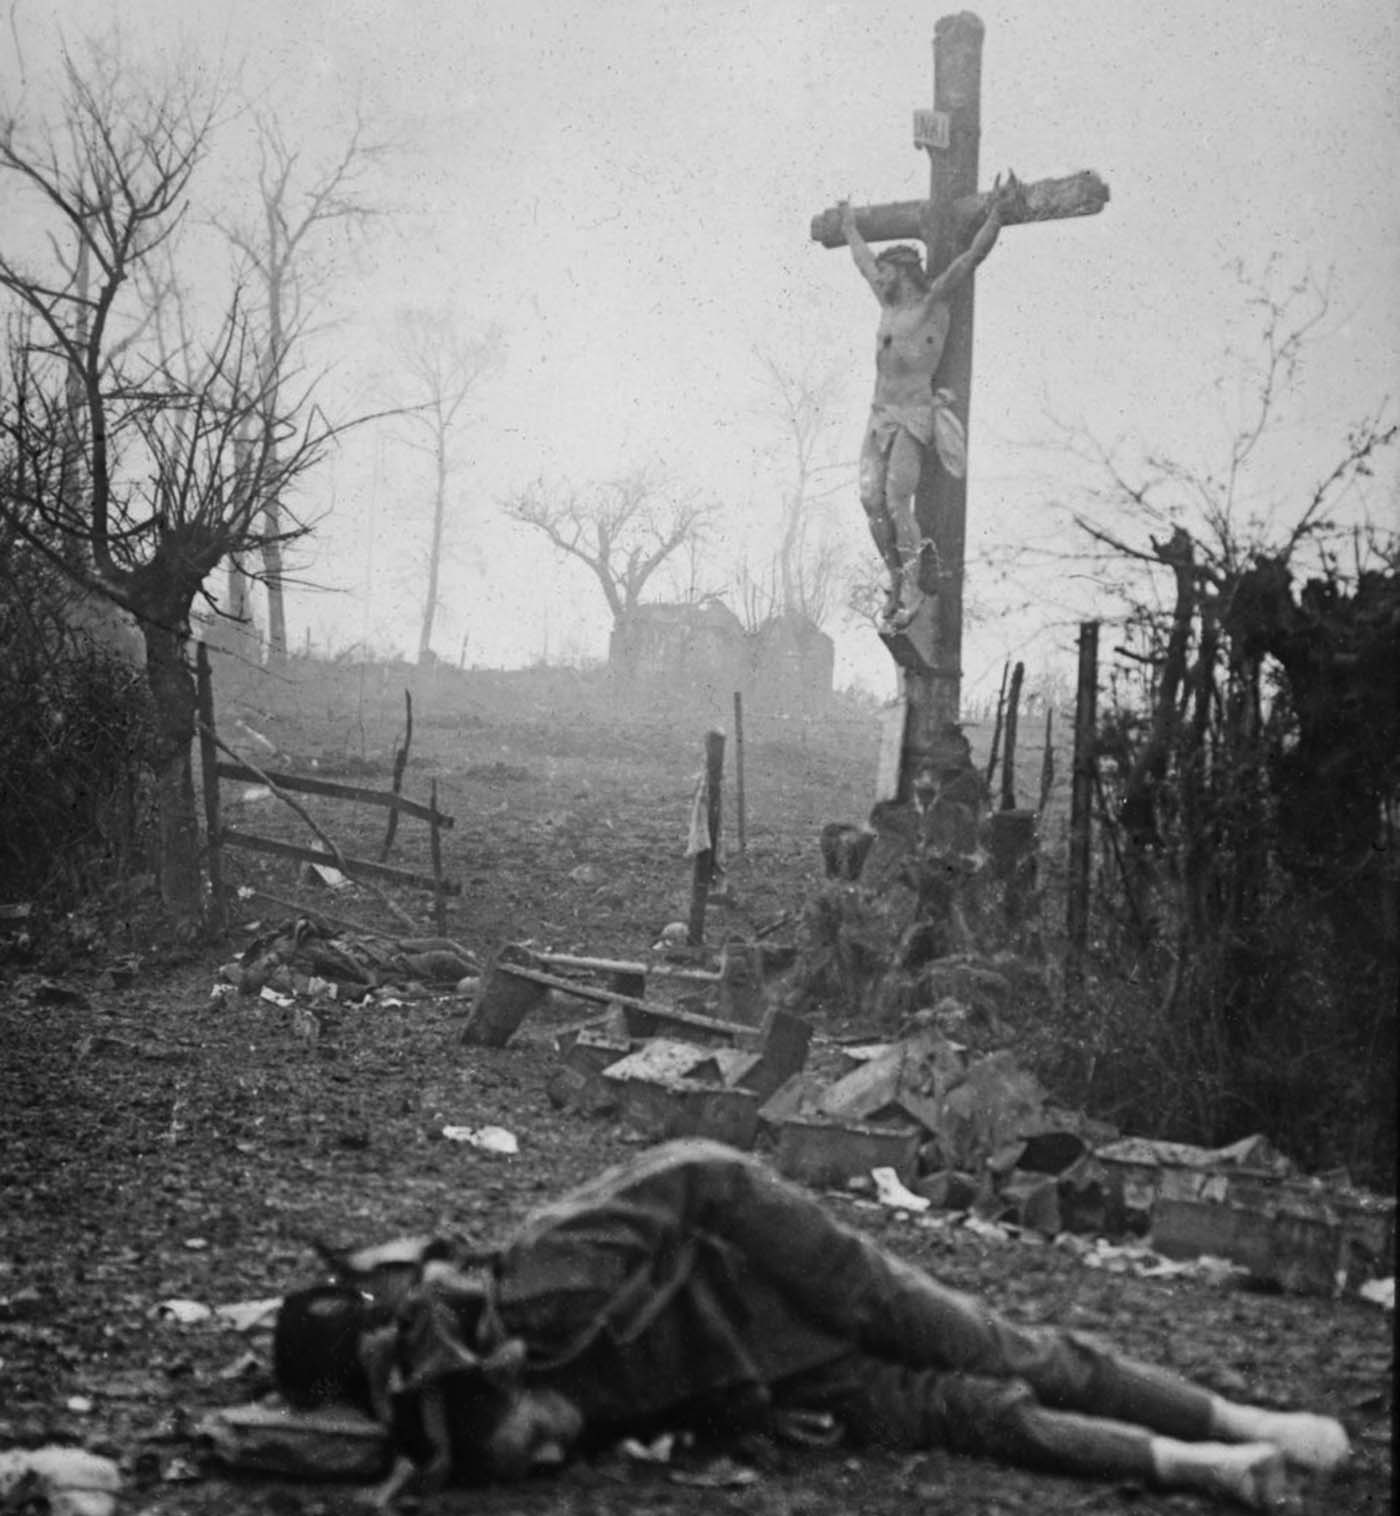 Carnage: Amid the appalling devastation and bodies of dead soldiers, a crucifix stands tall - miraculously preserved from the shell fire. The powerful image was captured after a bloody skirmish in 1917.